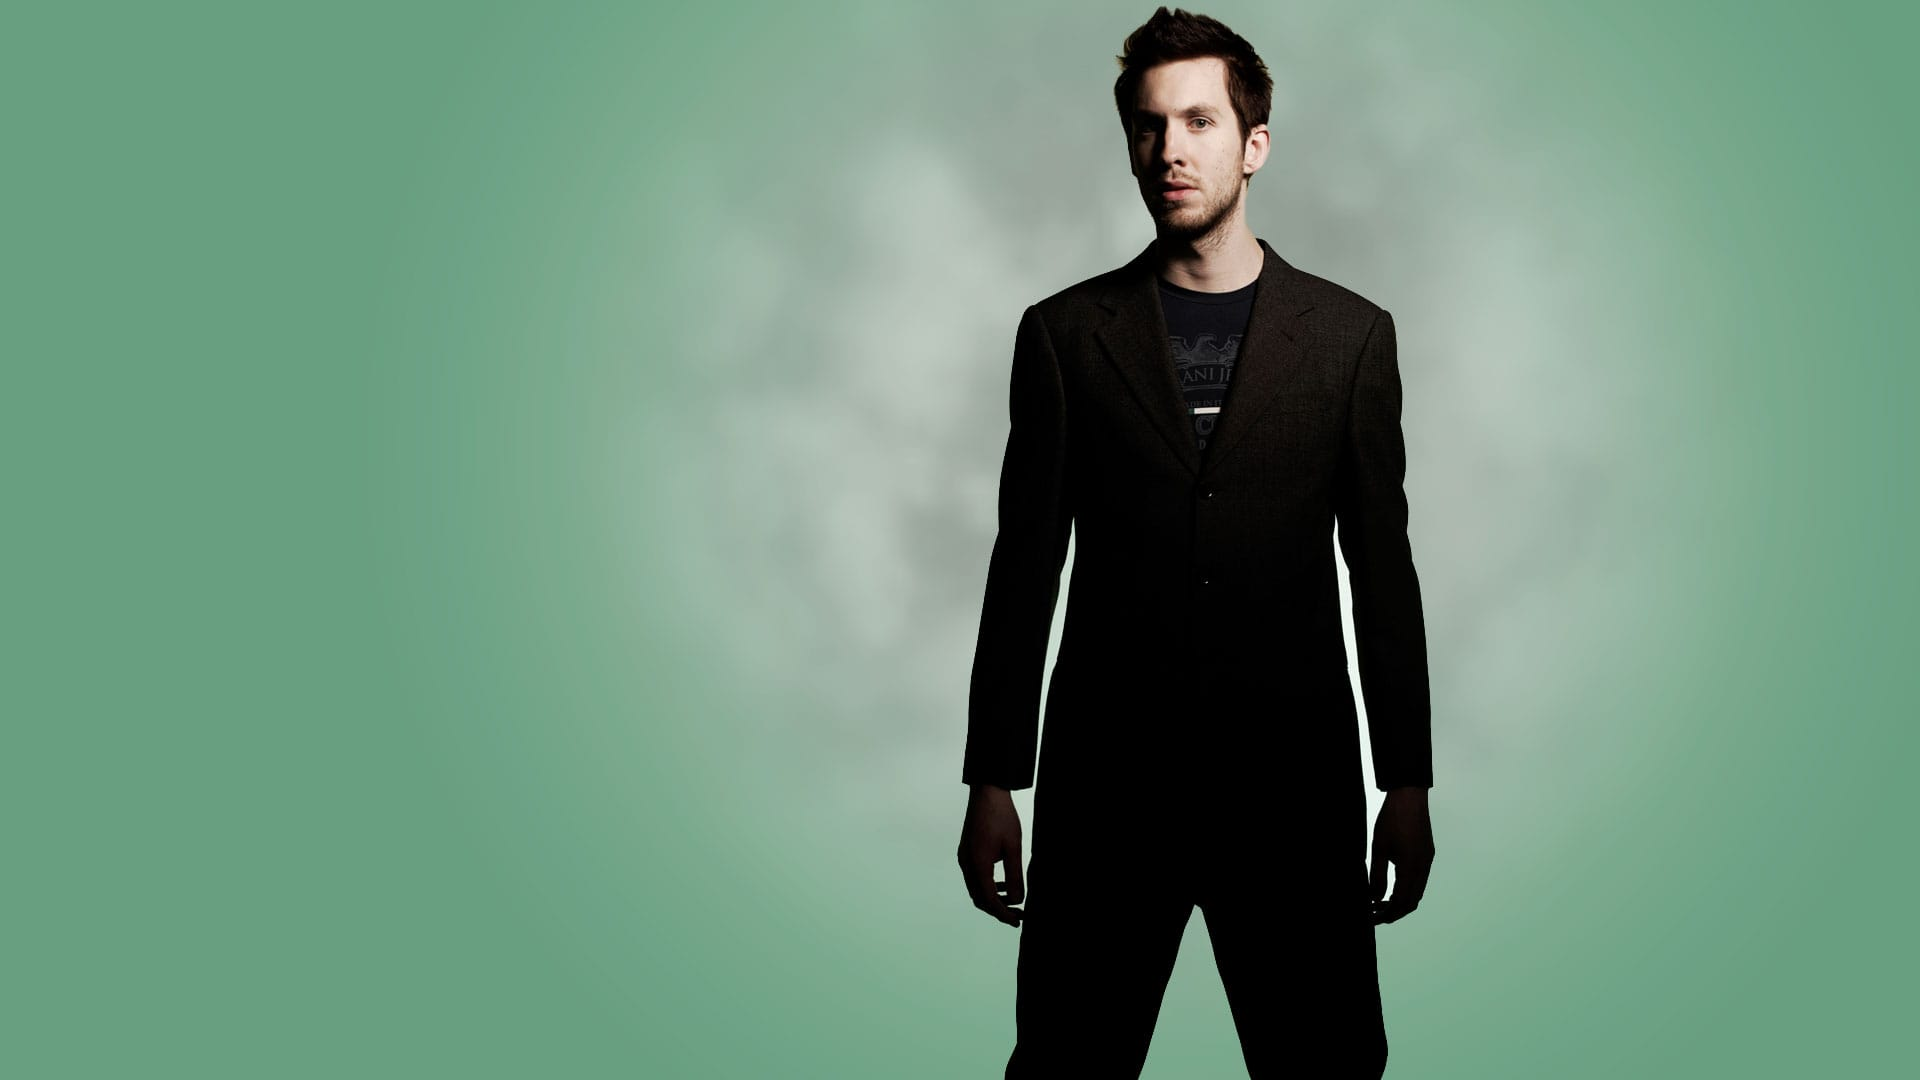 Calvin Harris Background